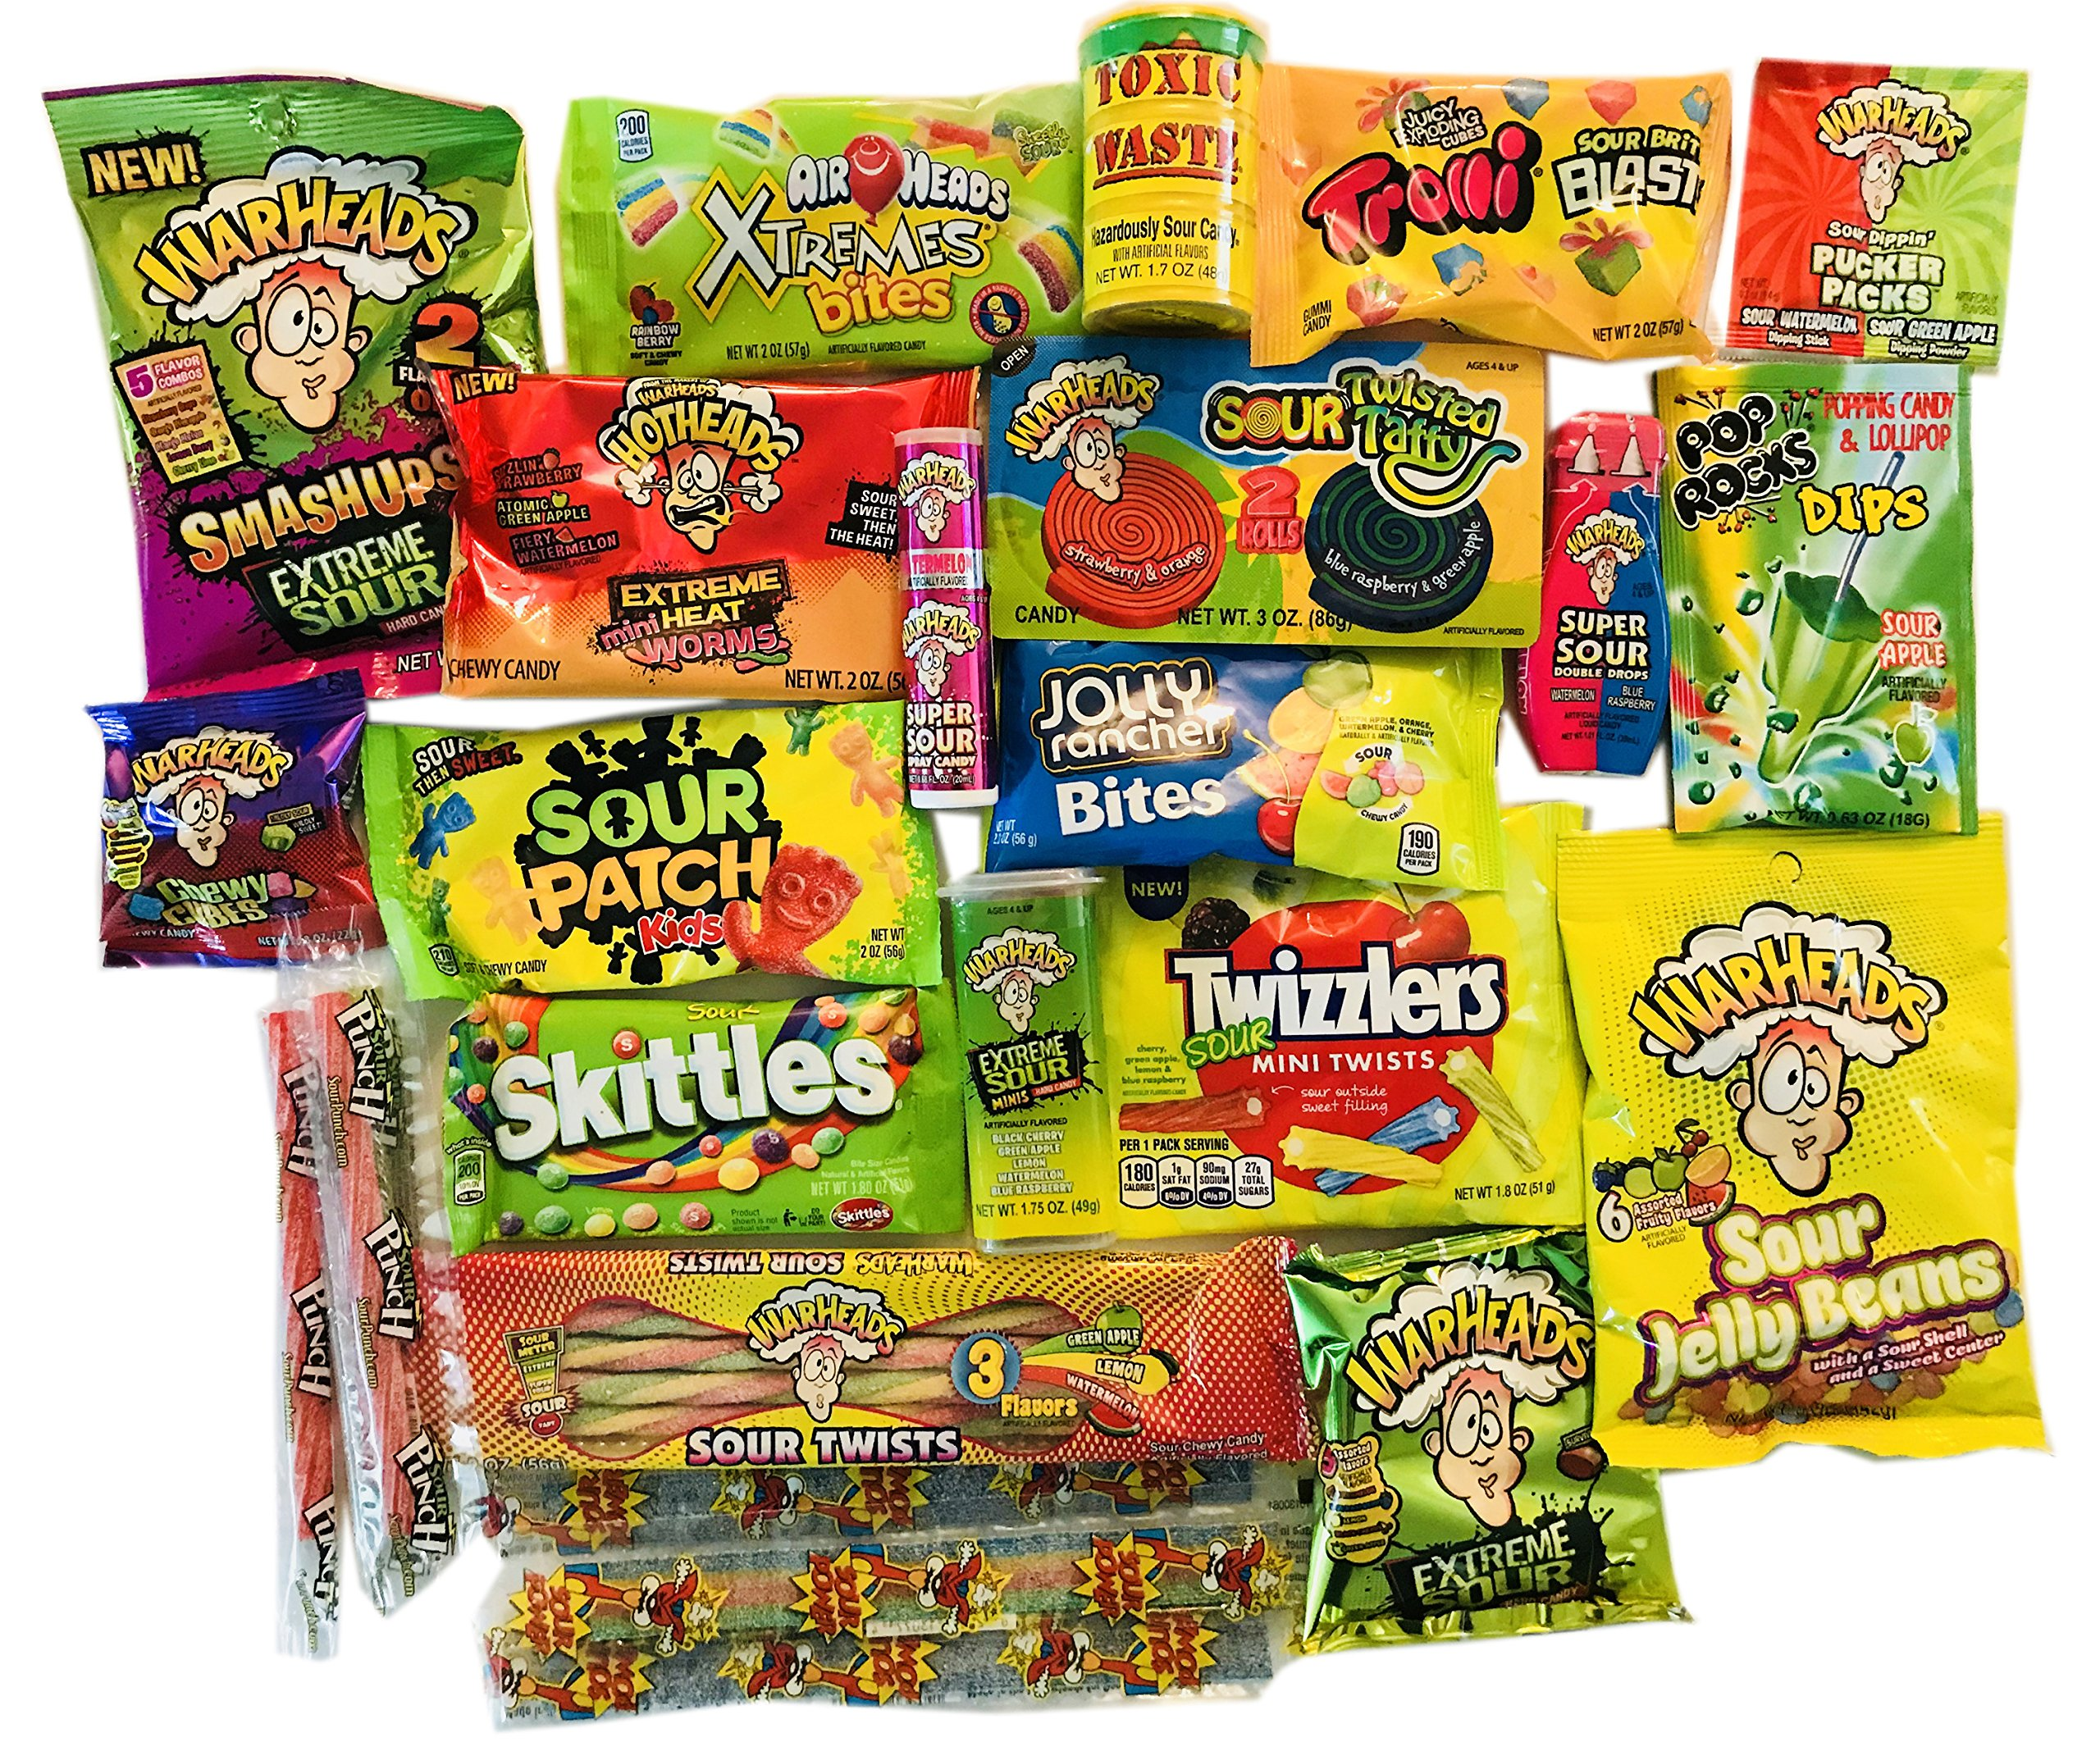 Sour Candy Assortment Gift Box ~ Warheads Extreme Sour Hard Candy, Toxic Waste, Sour Patch Kids, Belts, Spray, Straws, Airheads Xtreme Bites, Brite Blasts, Pop Rocks Dip, Pucker Pack Powder, and more by Woodstock Candy (Image #2)